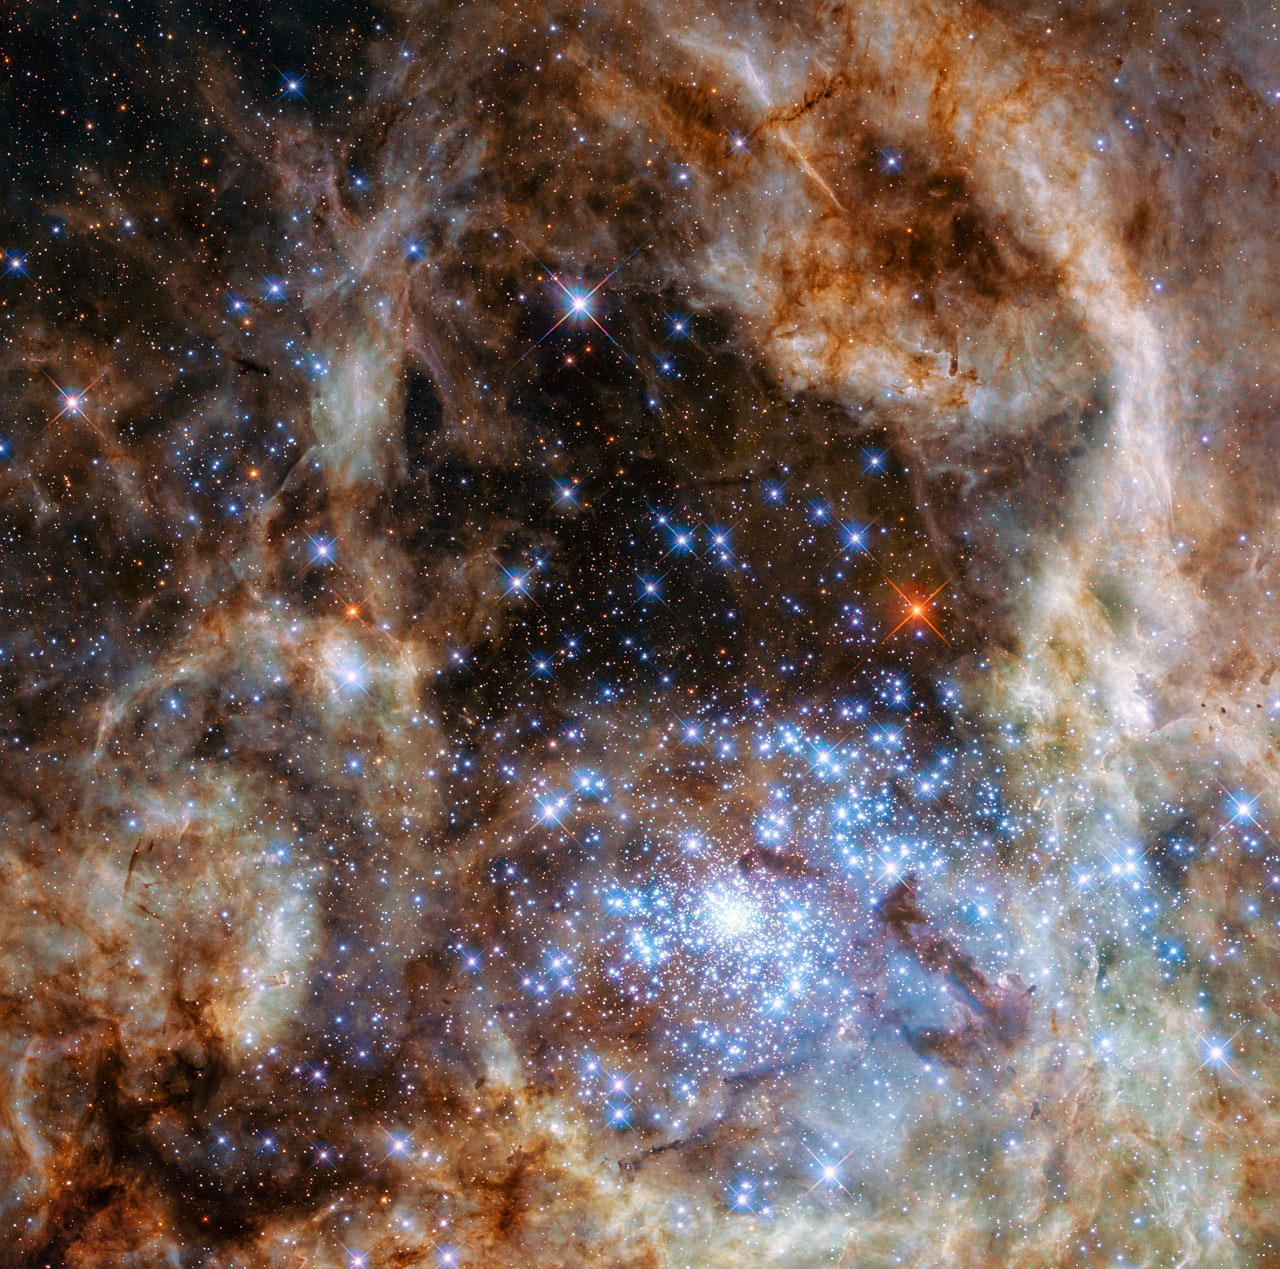 The central region of the Tarantula Nebula in the Large Magellanic Cloud, containing the R136 star cluster which contains hundreds of young blue stars, among them the most massive star detected in the universe so far, March 17, 2016.